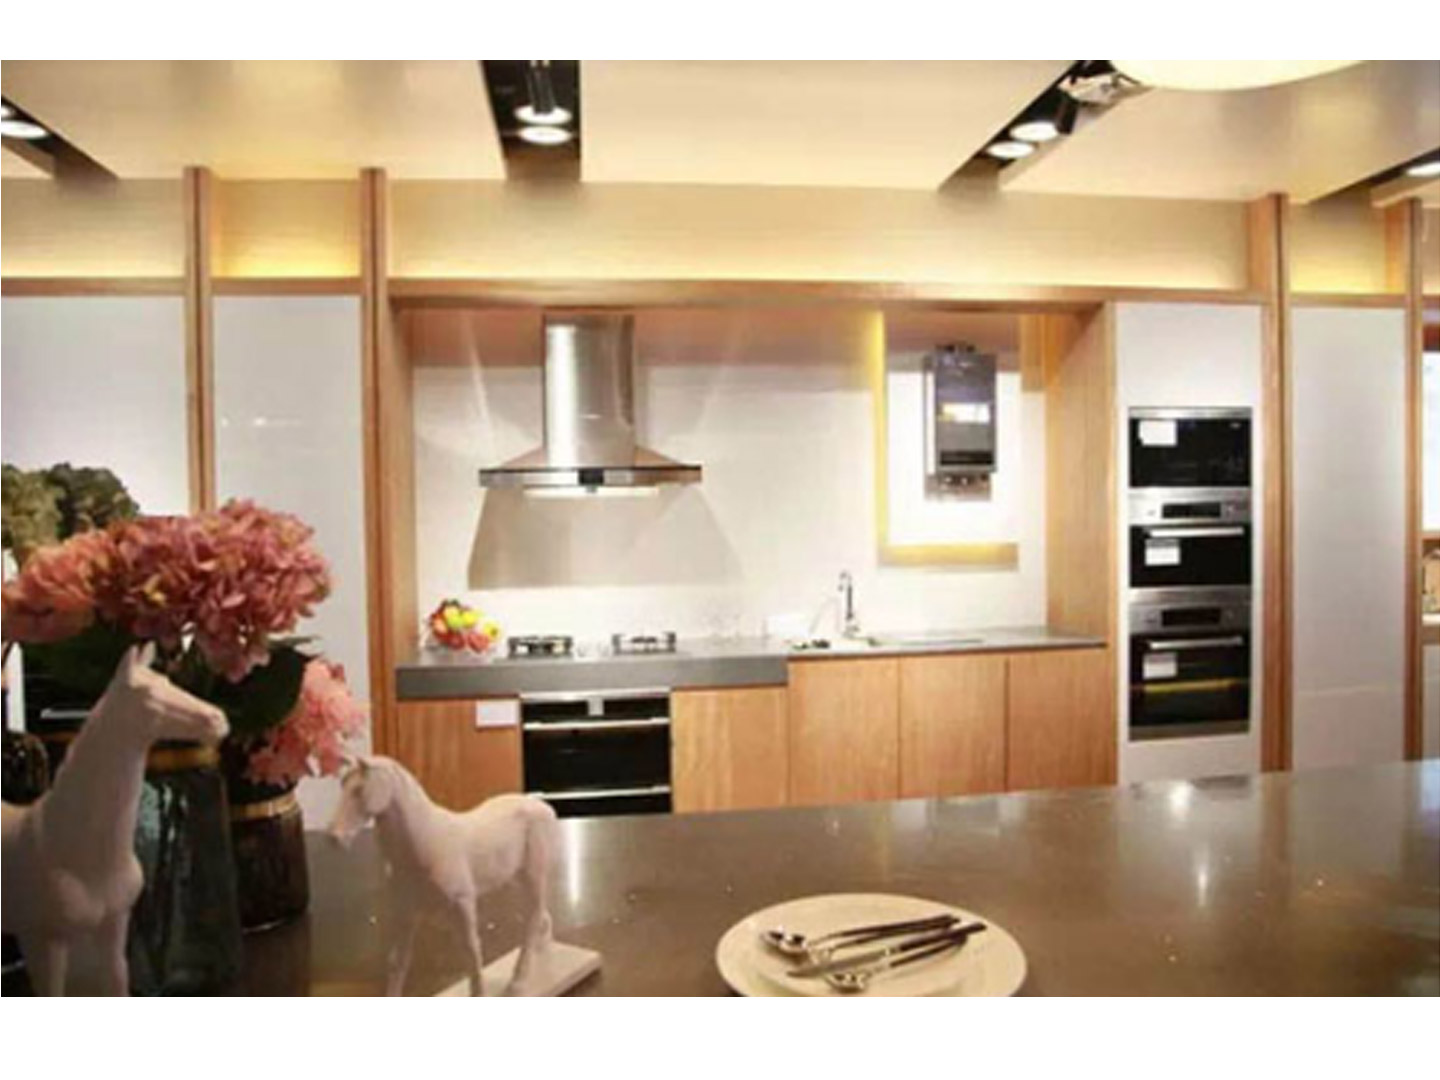 What should I pay attention to before installing Splashback Aluminum Composite Panel?